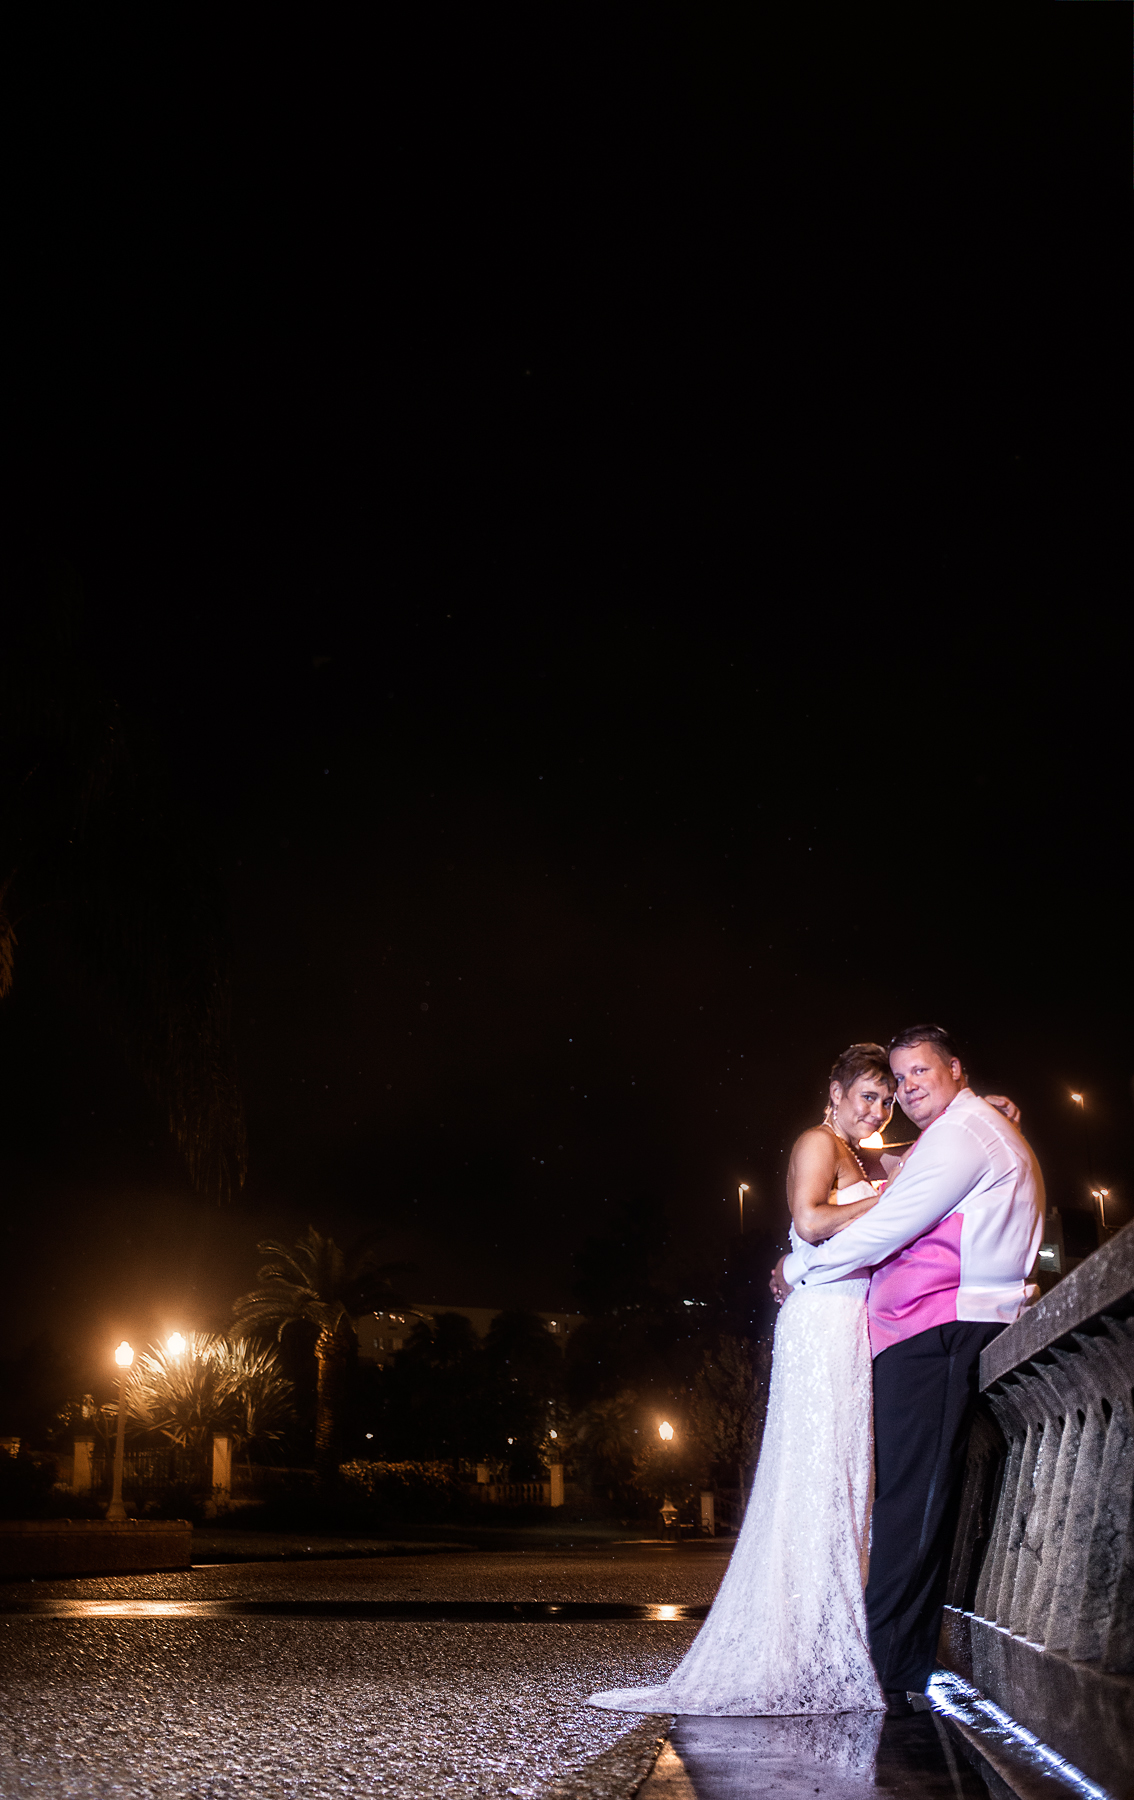 Wedding Photography at night by Garden Bistro Lakeland,FL